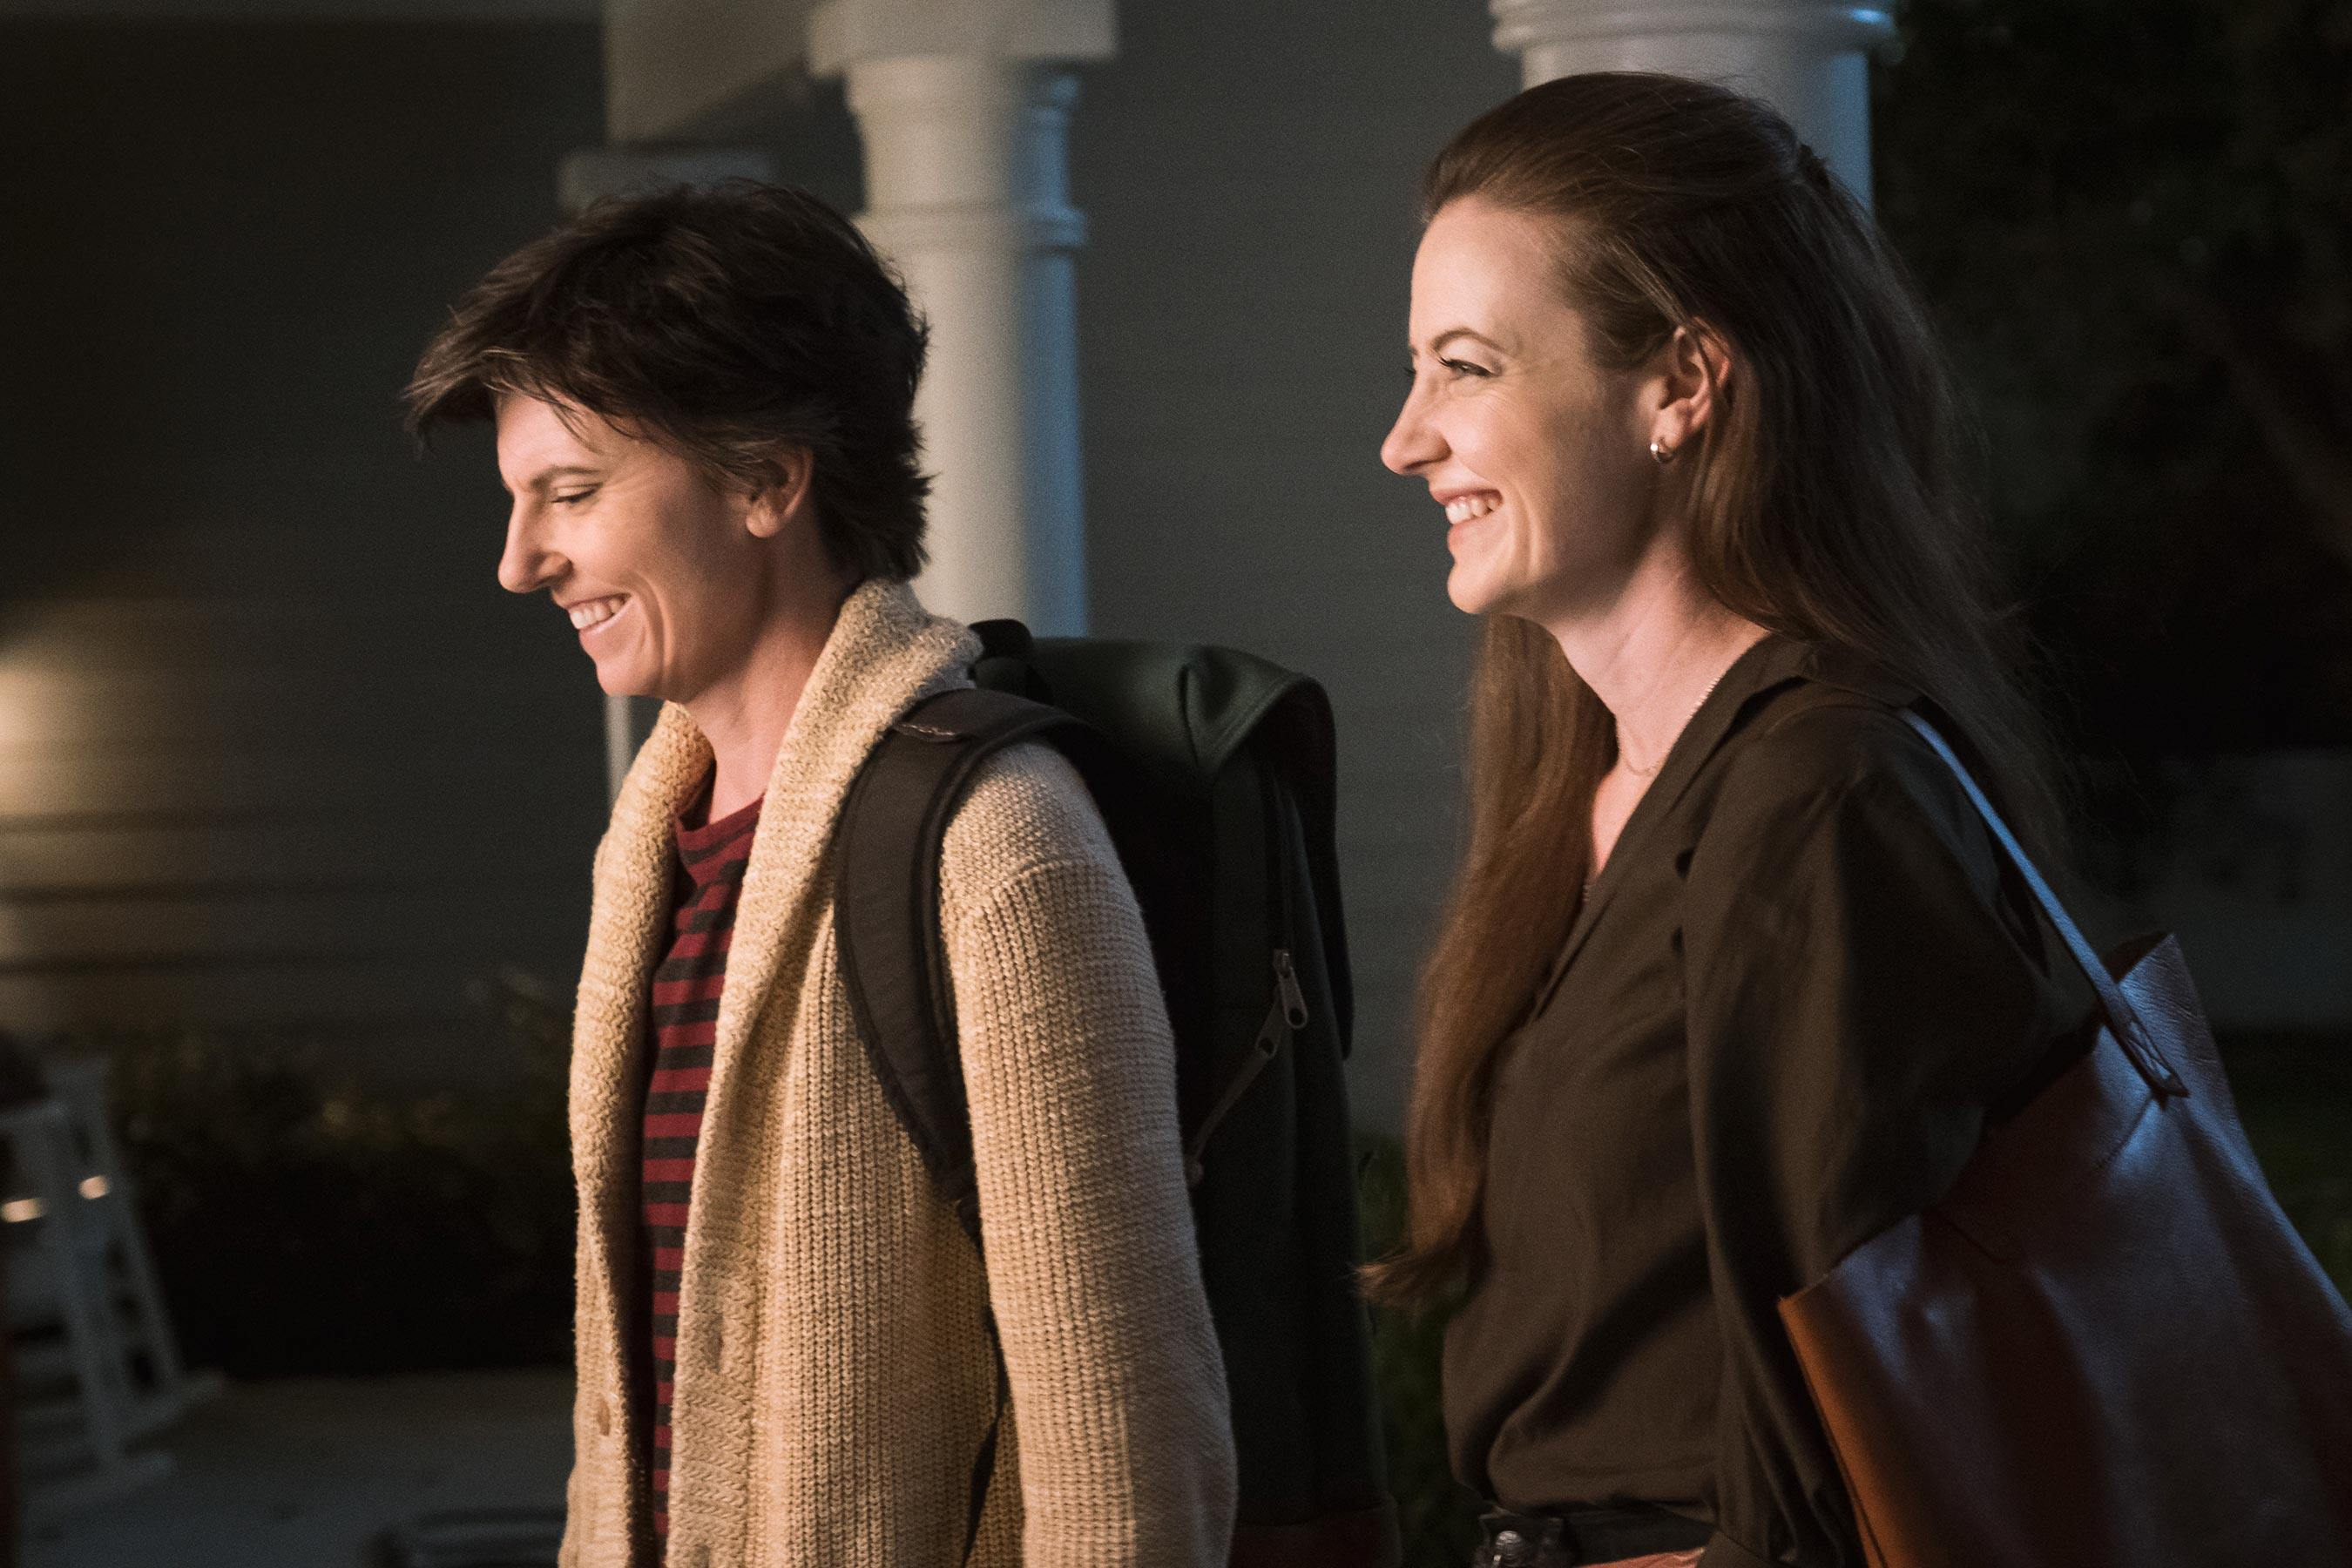 Tig Notaro as Tig Bavaro and Stephanie Allynne as Kate on One Mississippi